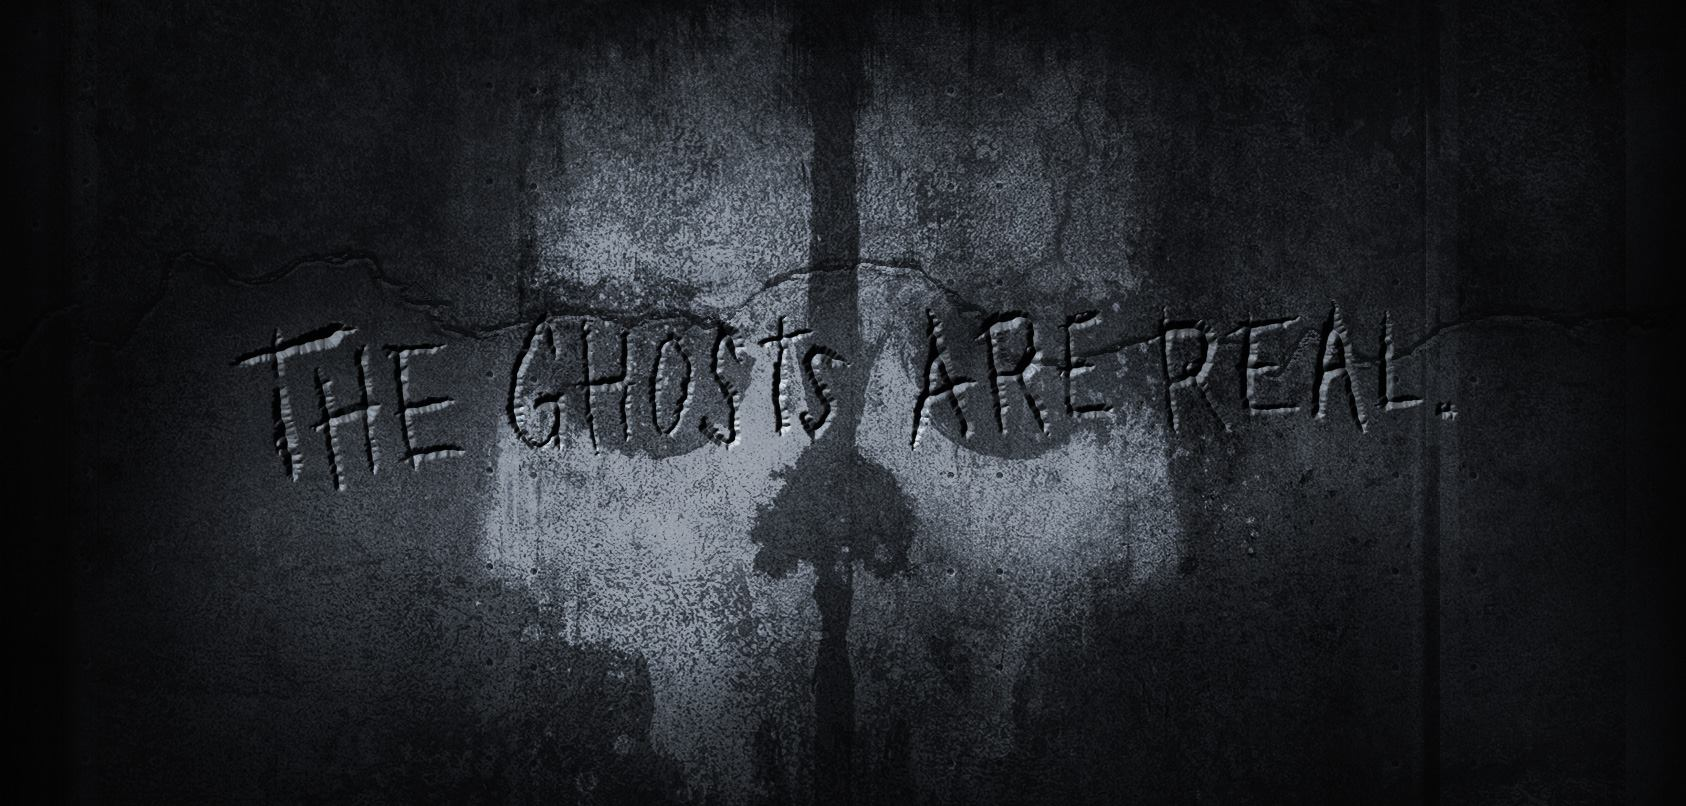 Call Of Duty: Ghosts Wallpapers - Wallpaper Cave